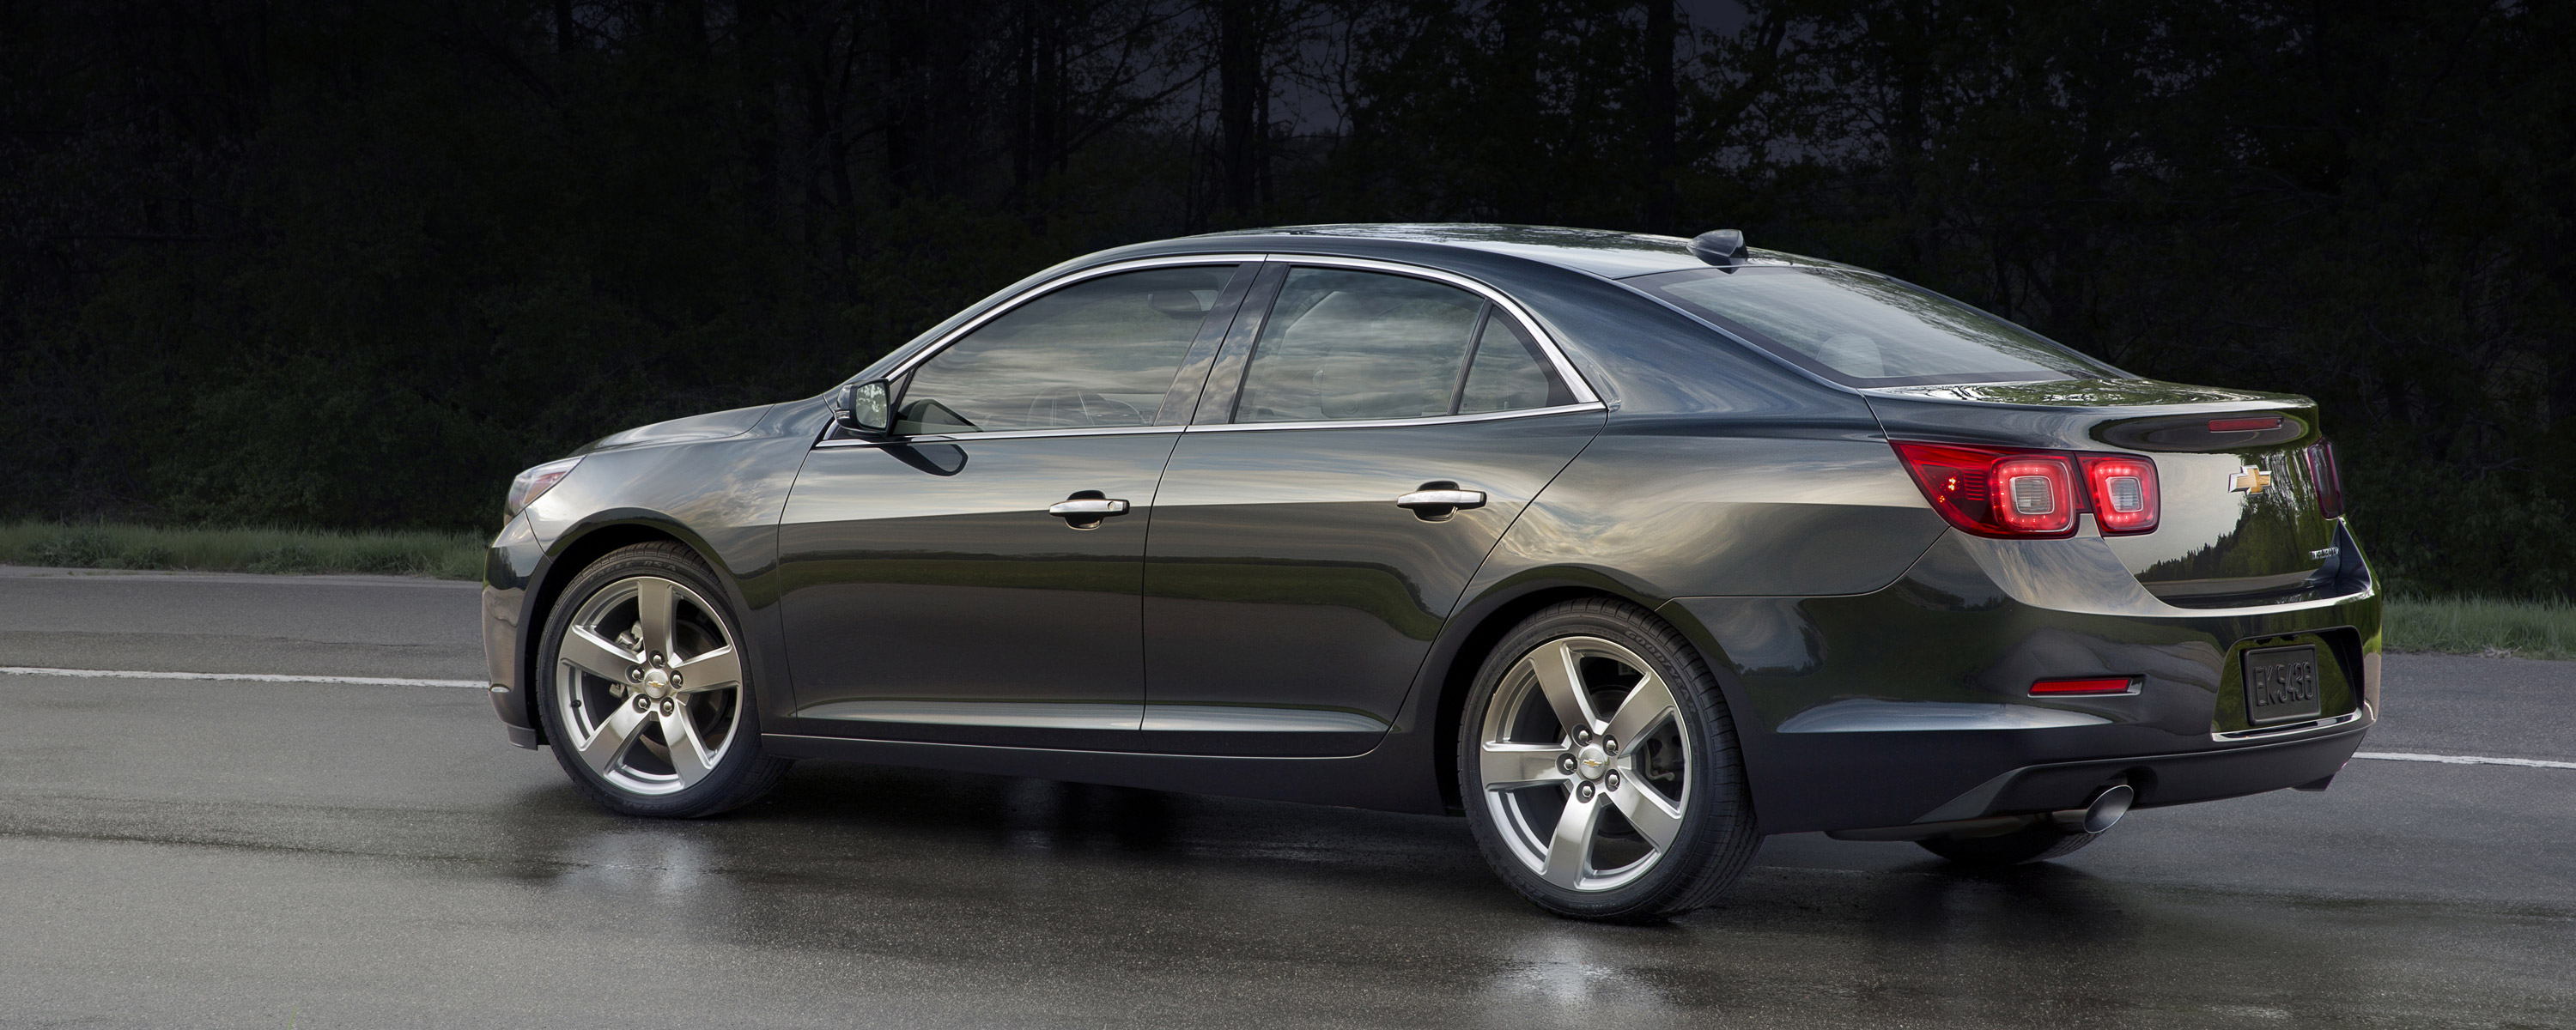 What Is Difference Between Malibu 2014 And 2015 | Autos Post